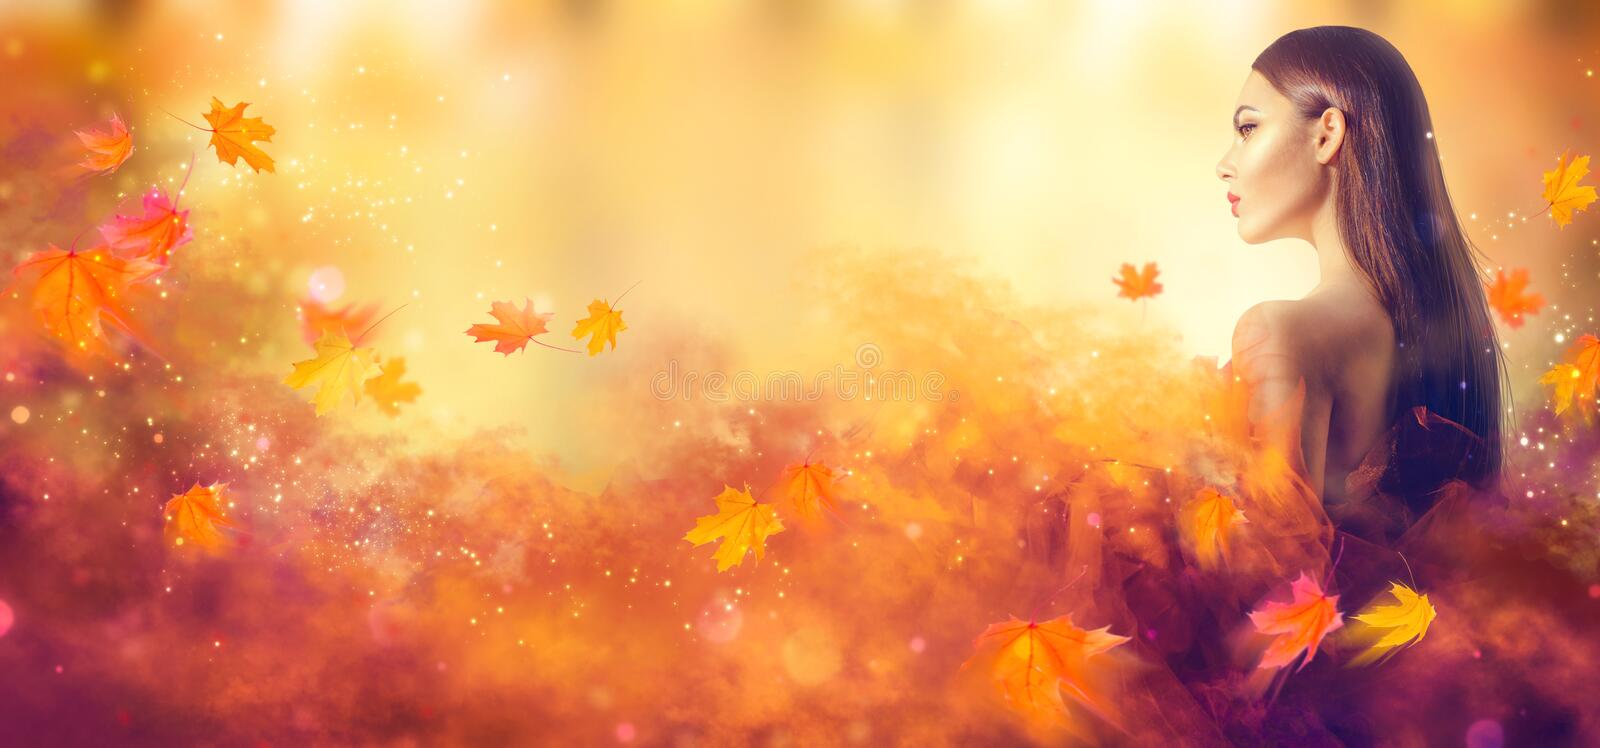 Autumn woman. Beauty fashion woman in autumn yellow dress royalty free stock photography